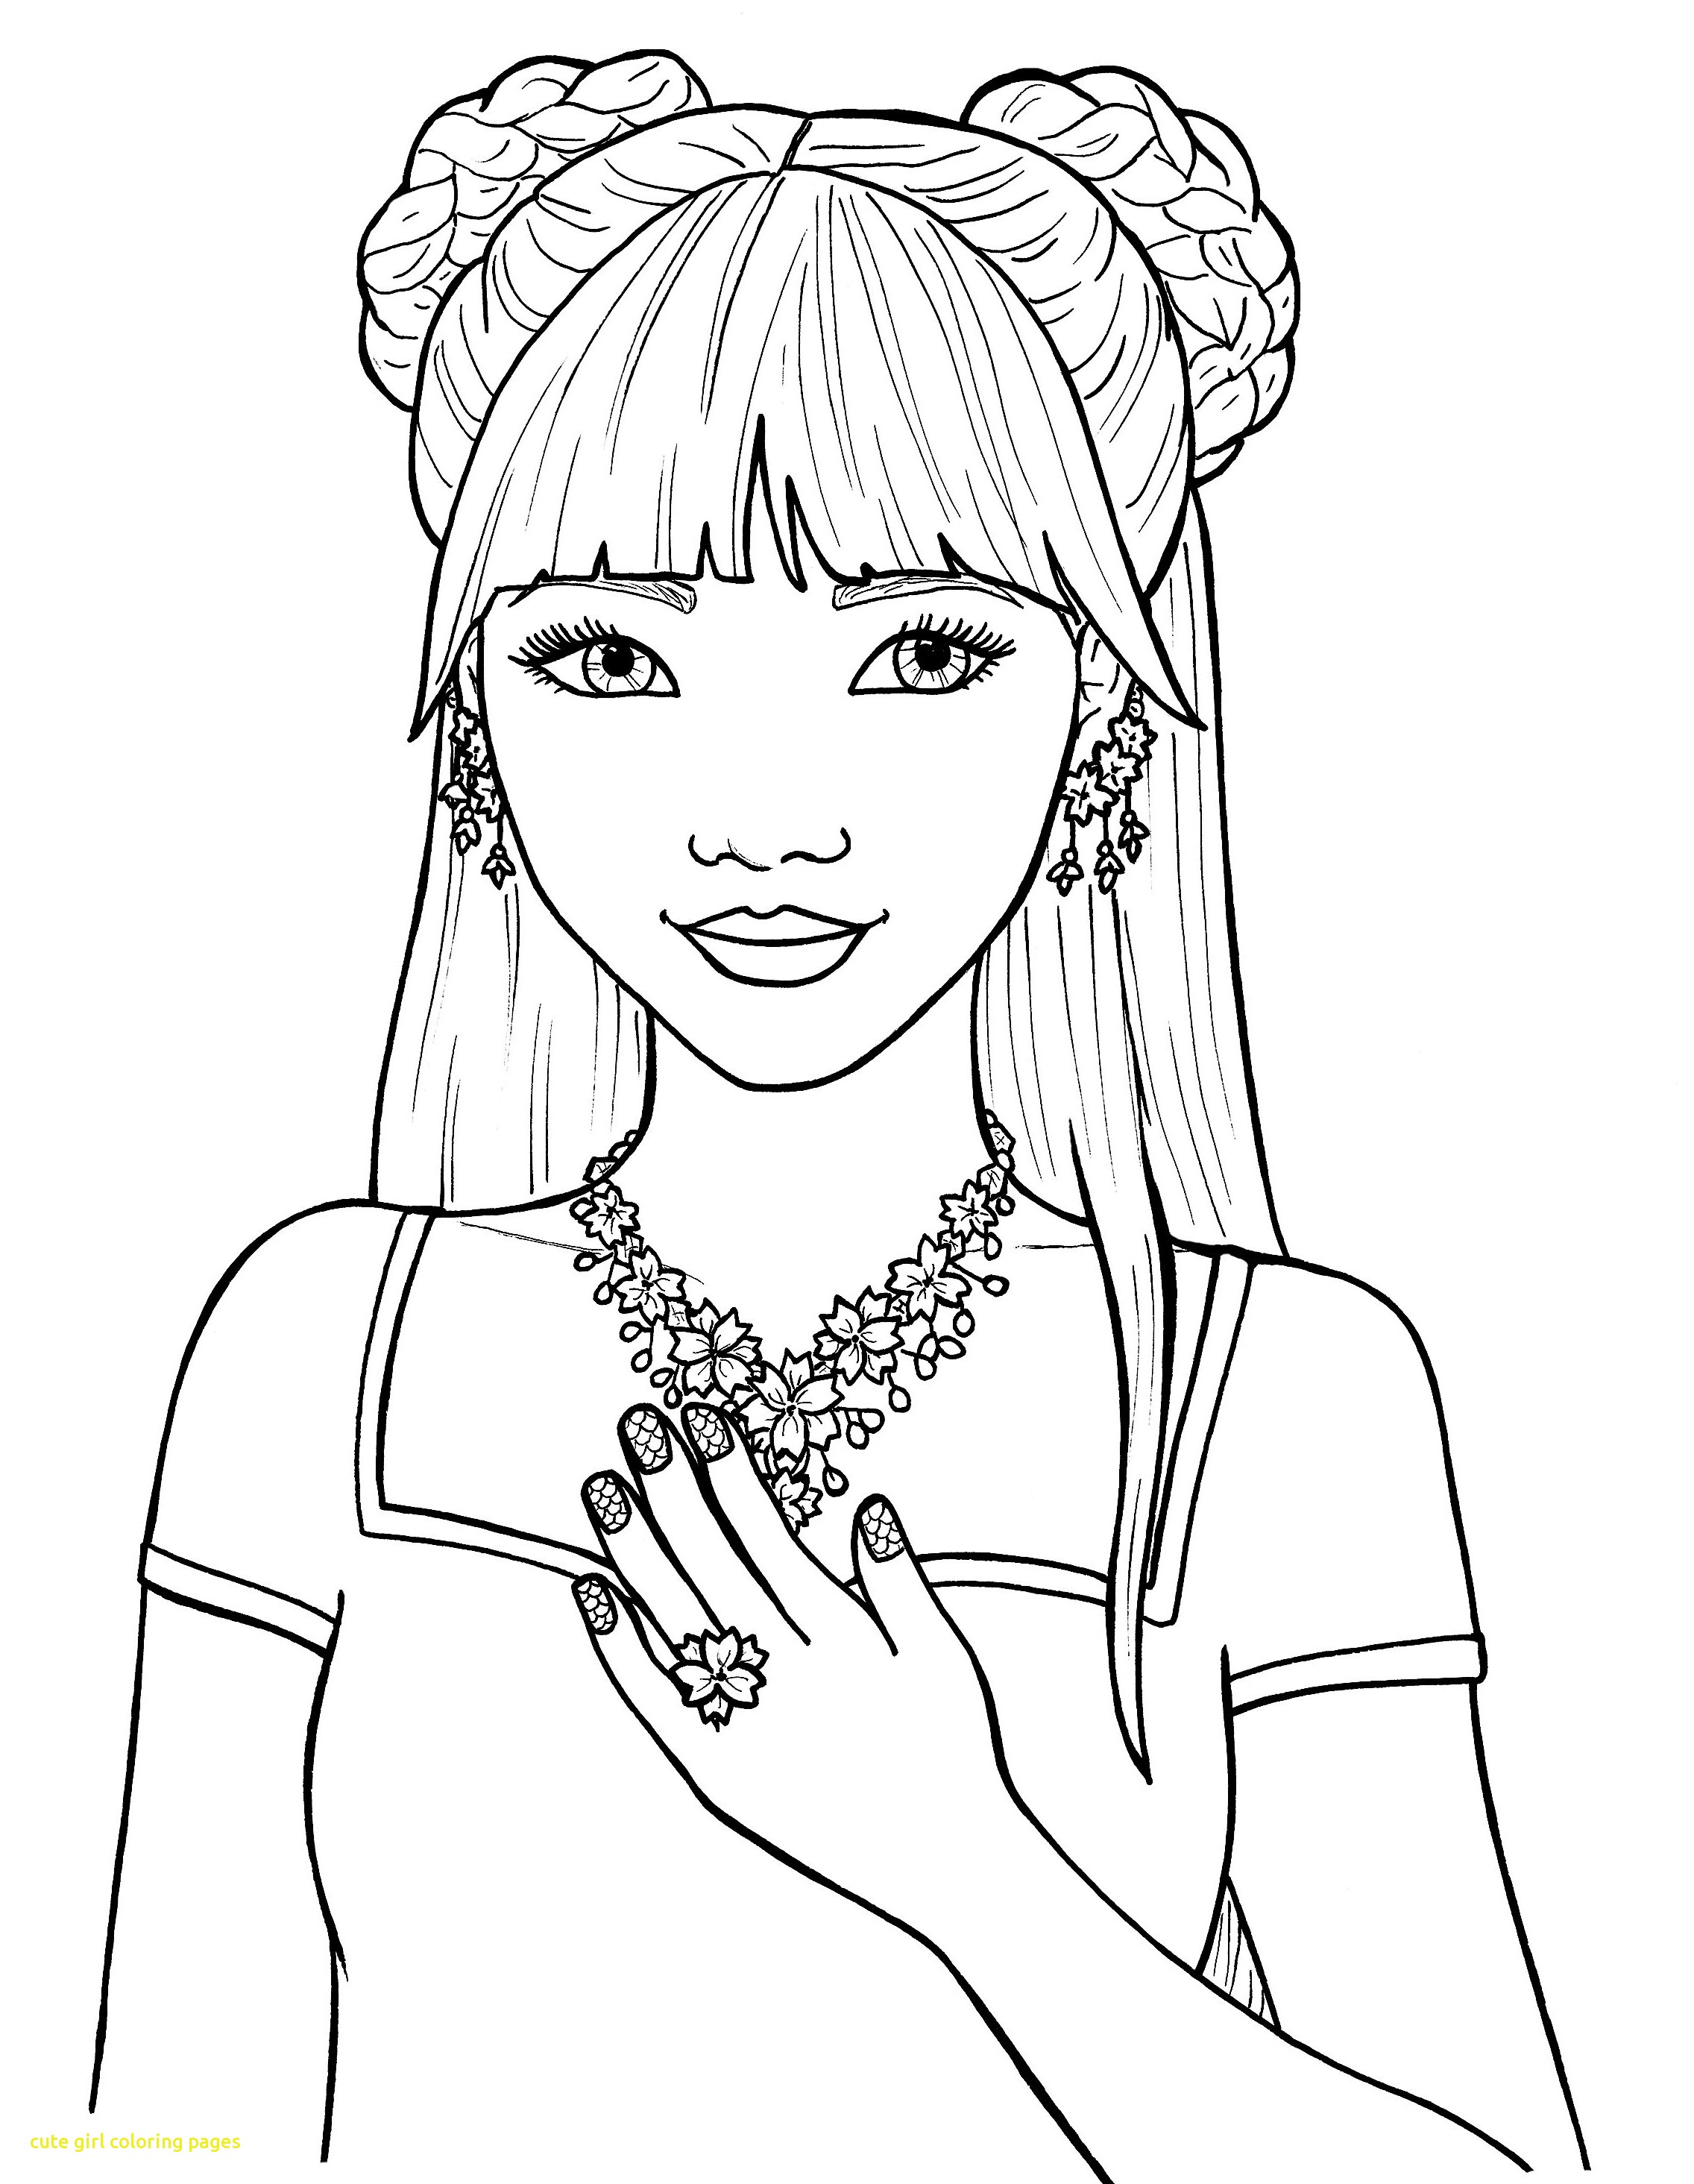 colouring picture of girl coloring pages for girls best coloring pages for kids of colouring picture girl